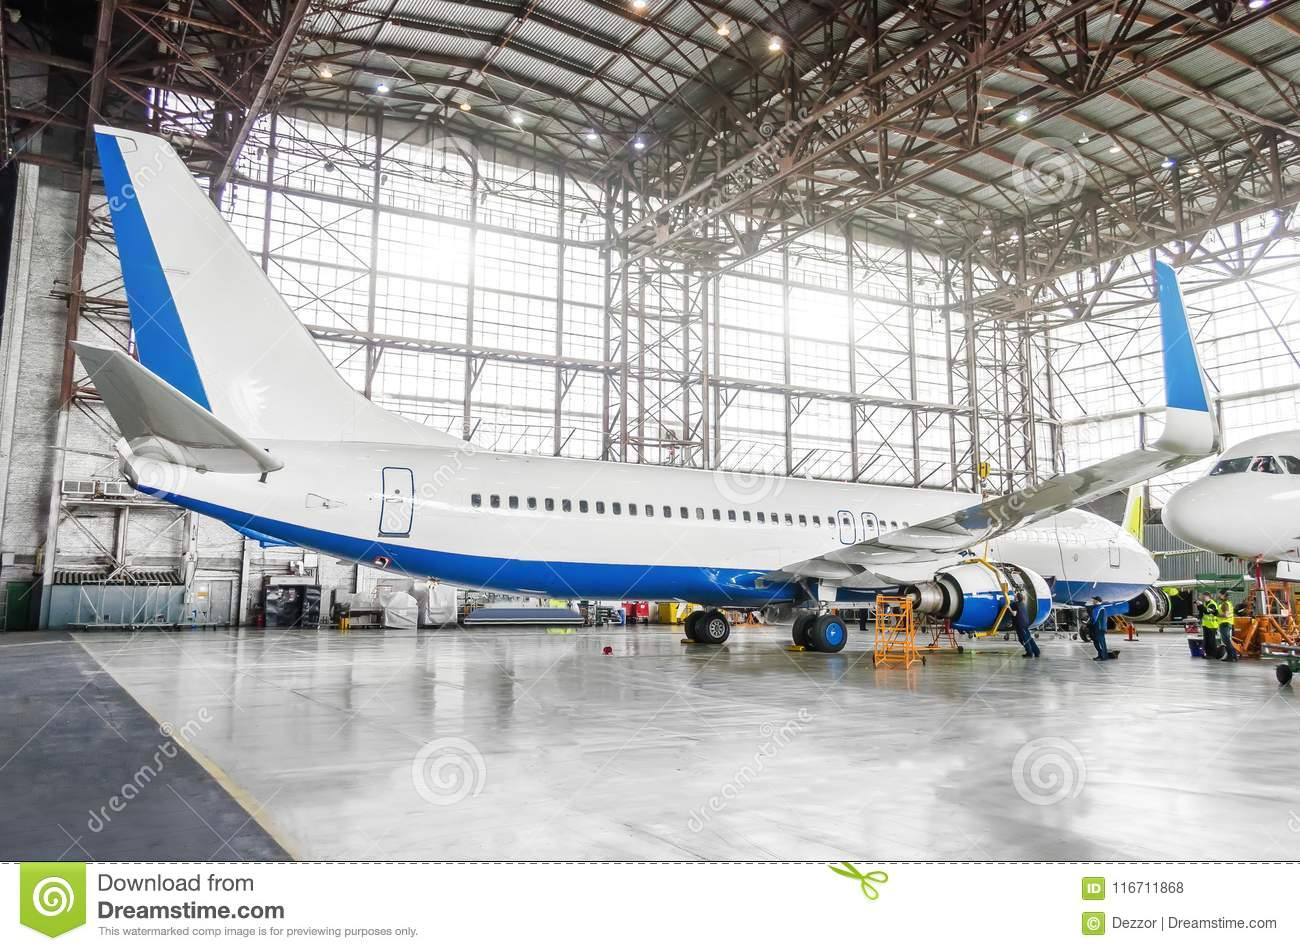 Airplane Maintenance Passenger Aircraft On Maintenance Of Engine And Fuselage Repair In